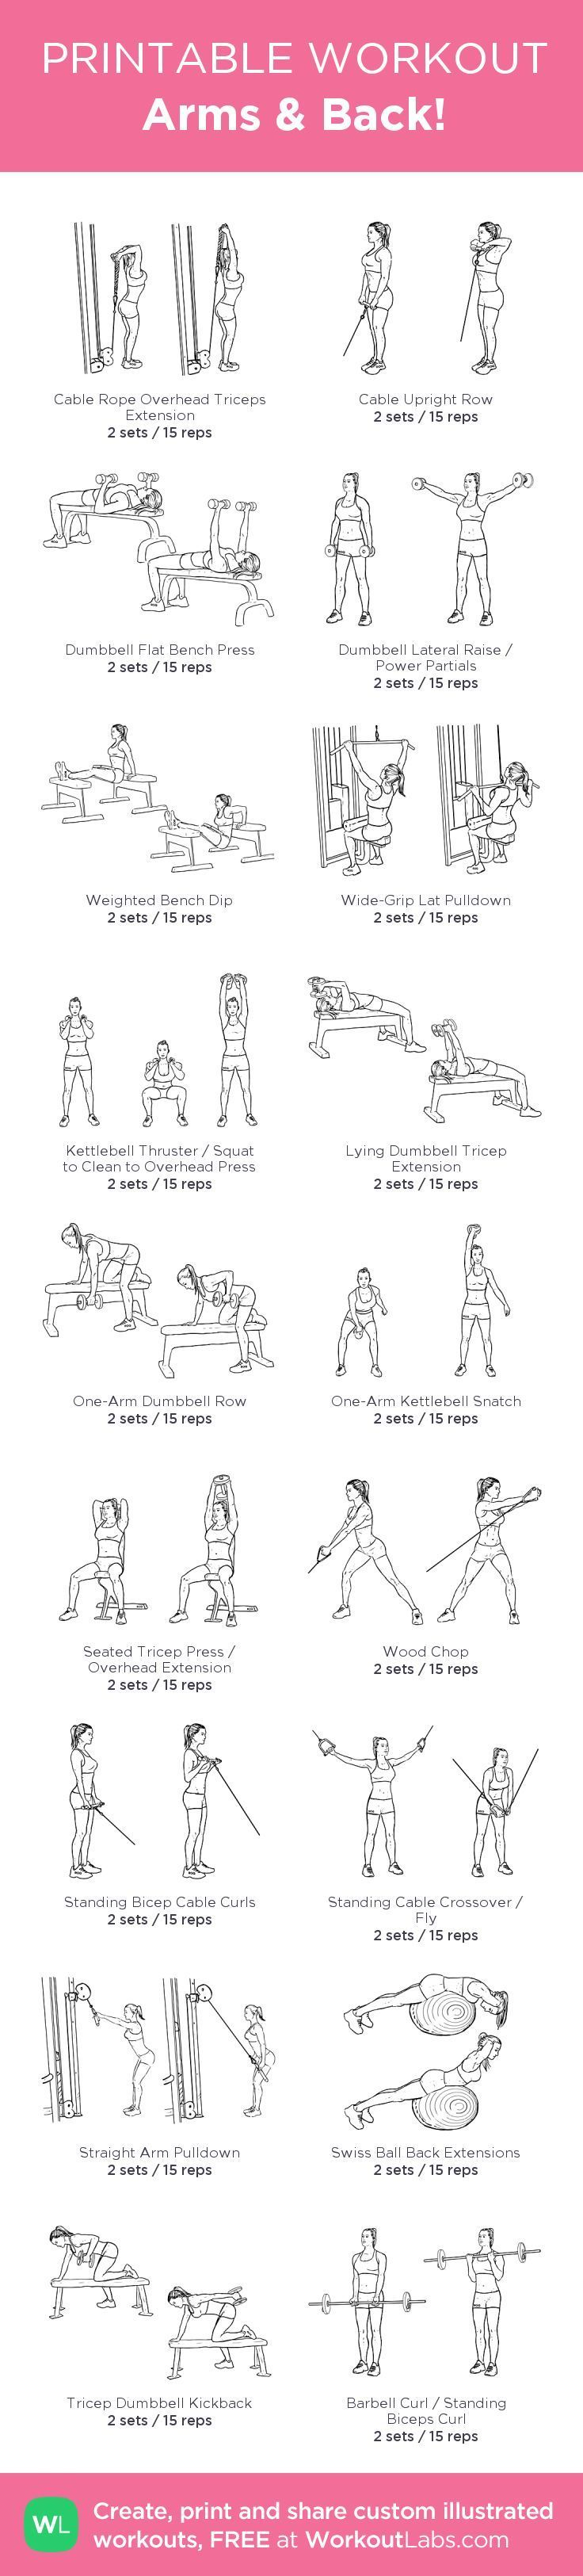 Arms Back My Custom Workout Created At WorkoutLabs O Click Through To Download As Printable PDF Customworkout Free Hand Exercises For